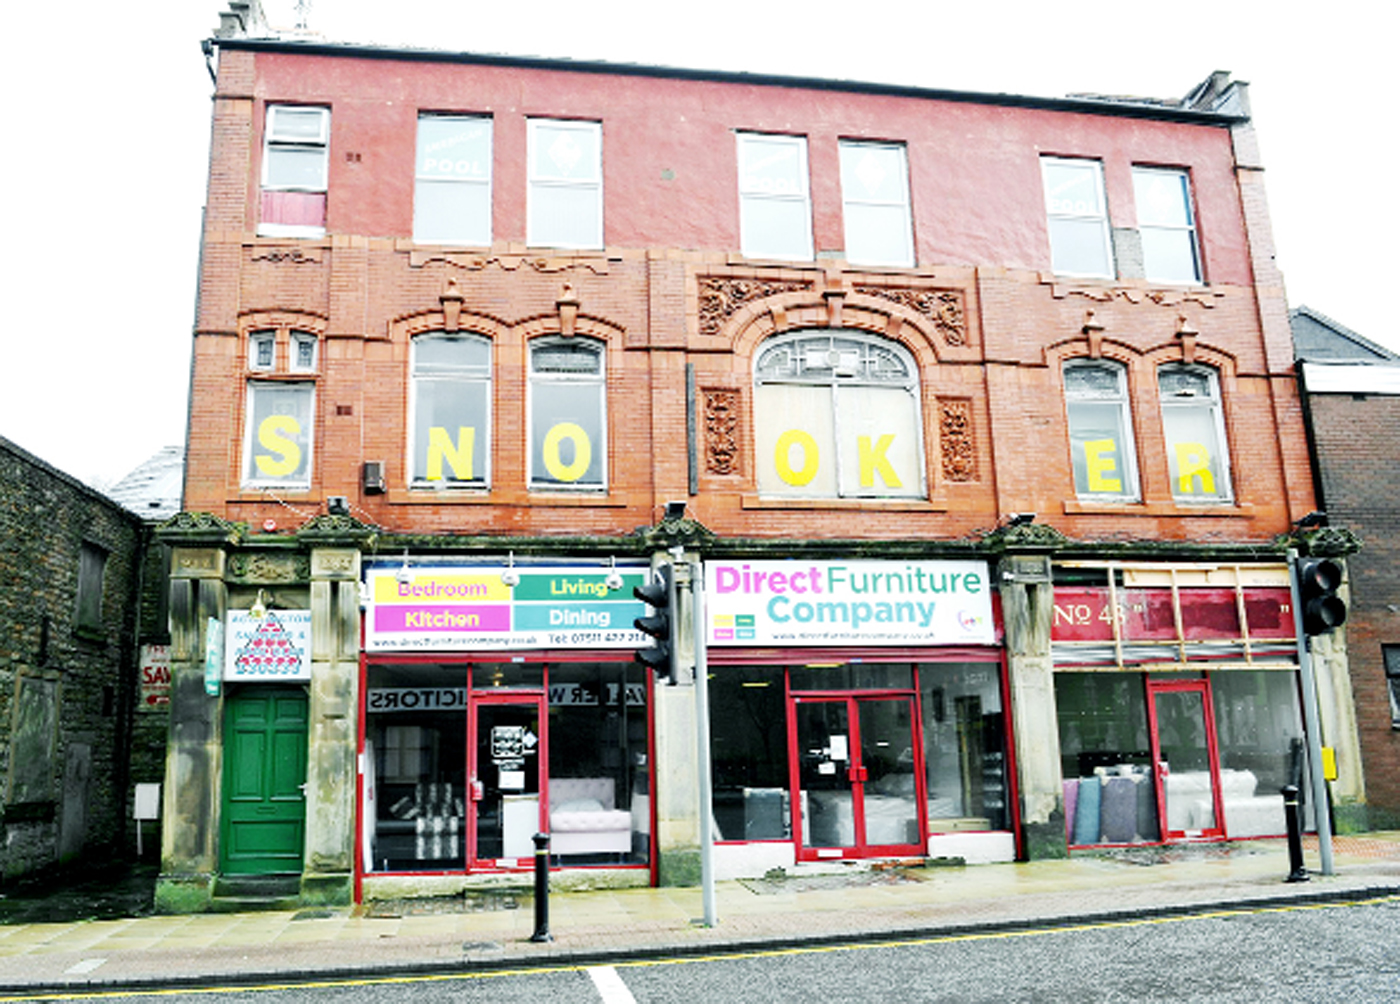 Accrington snooker hall had cocaine stuffed in tables